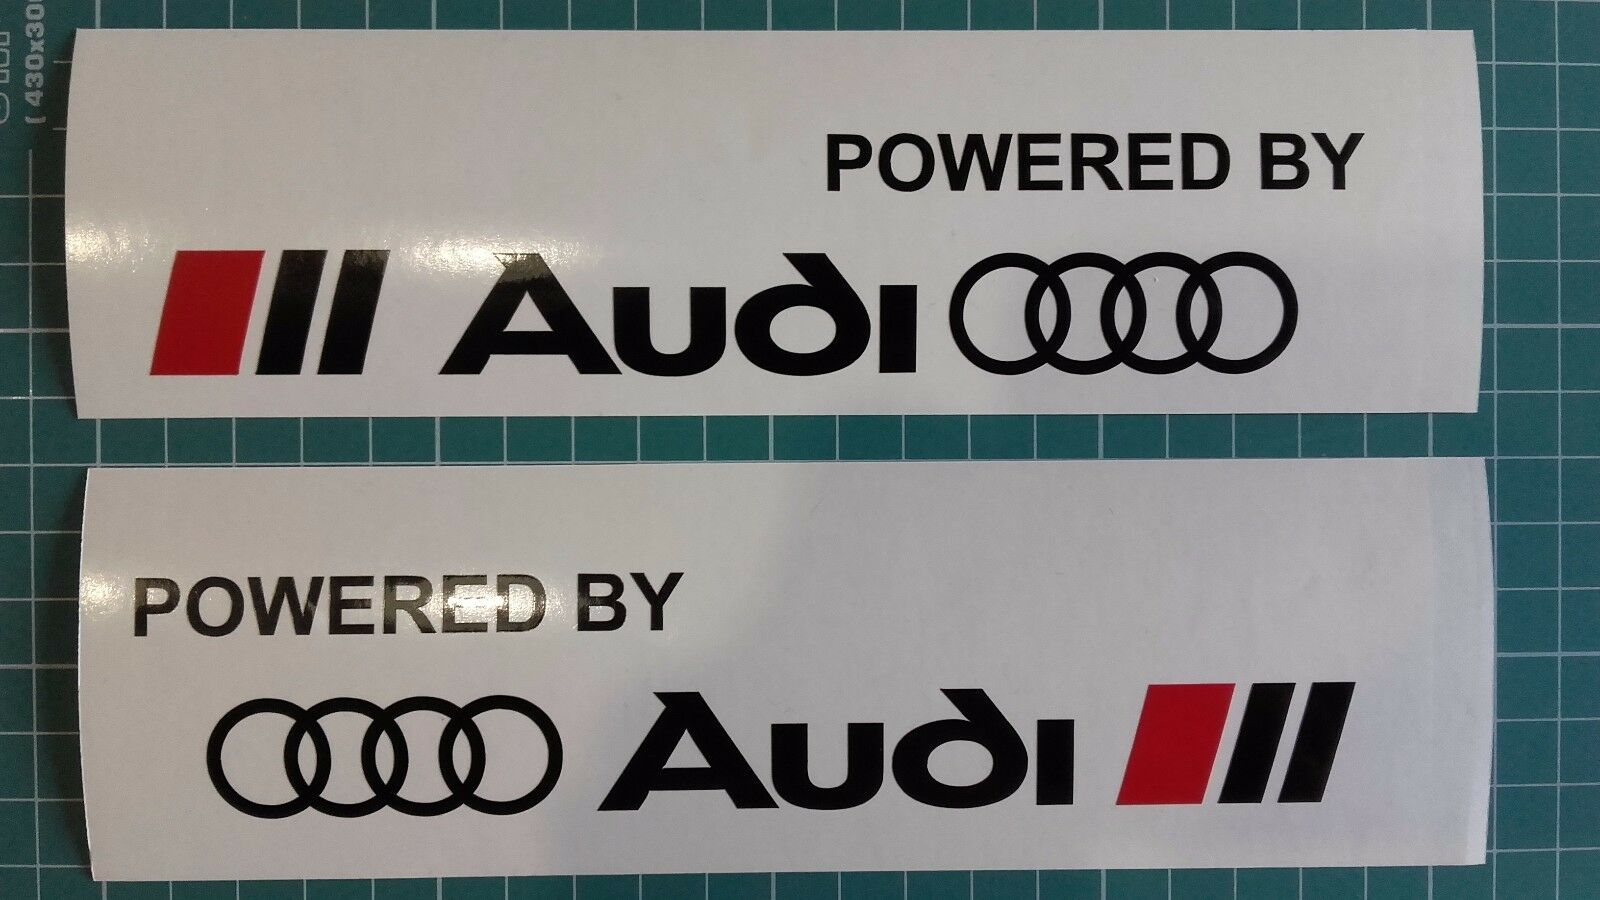 Powered by Audi sticker decal